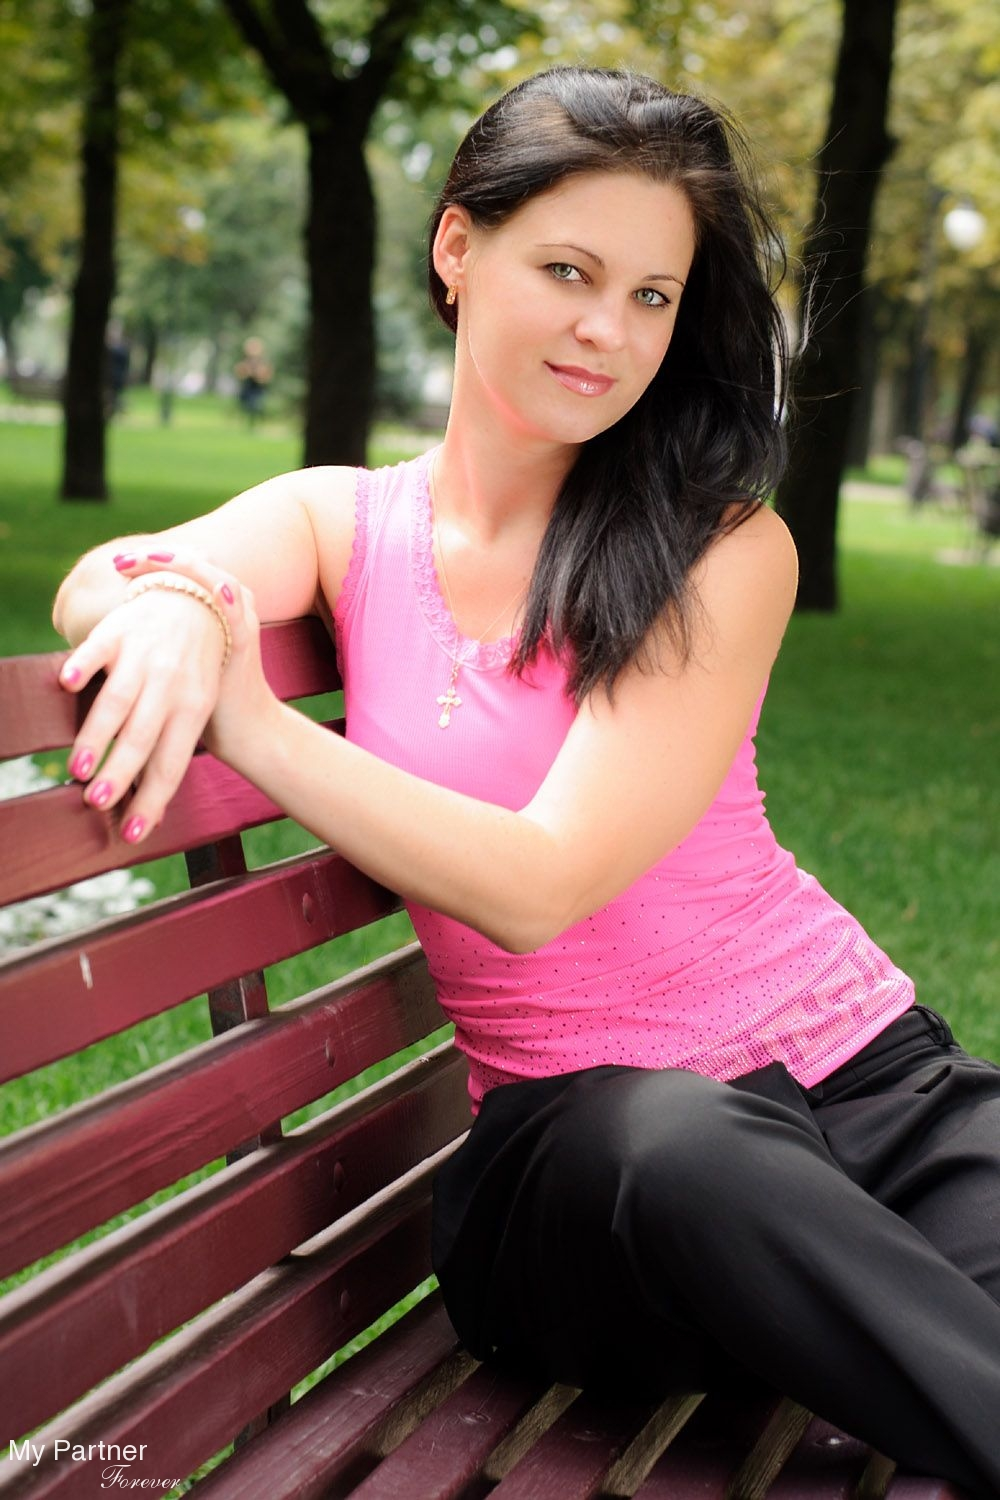 free dating sites ukrainian ladies Free ukrainian women : freeukrainianwomencom  at ukrainian dating sites when you put a picture to photo rating,.